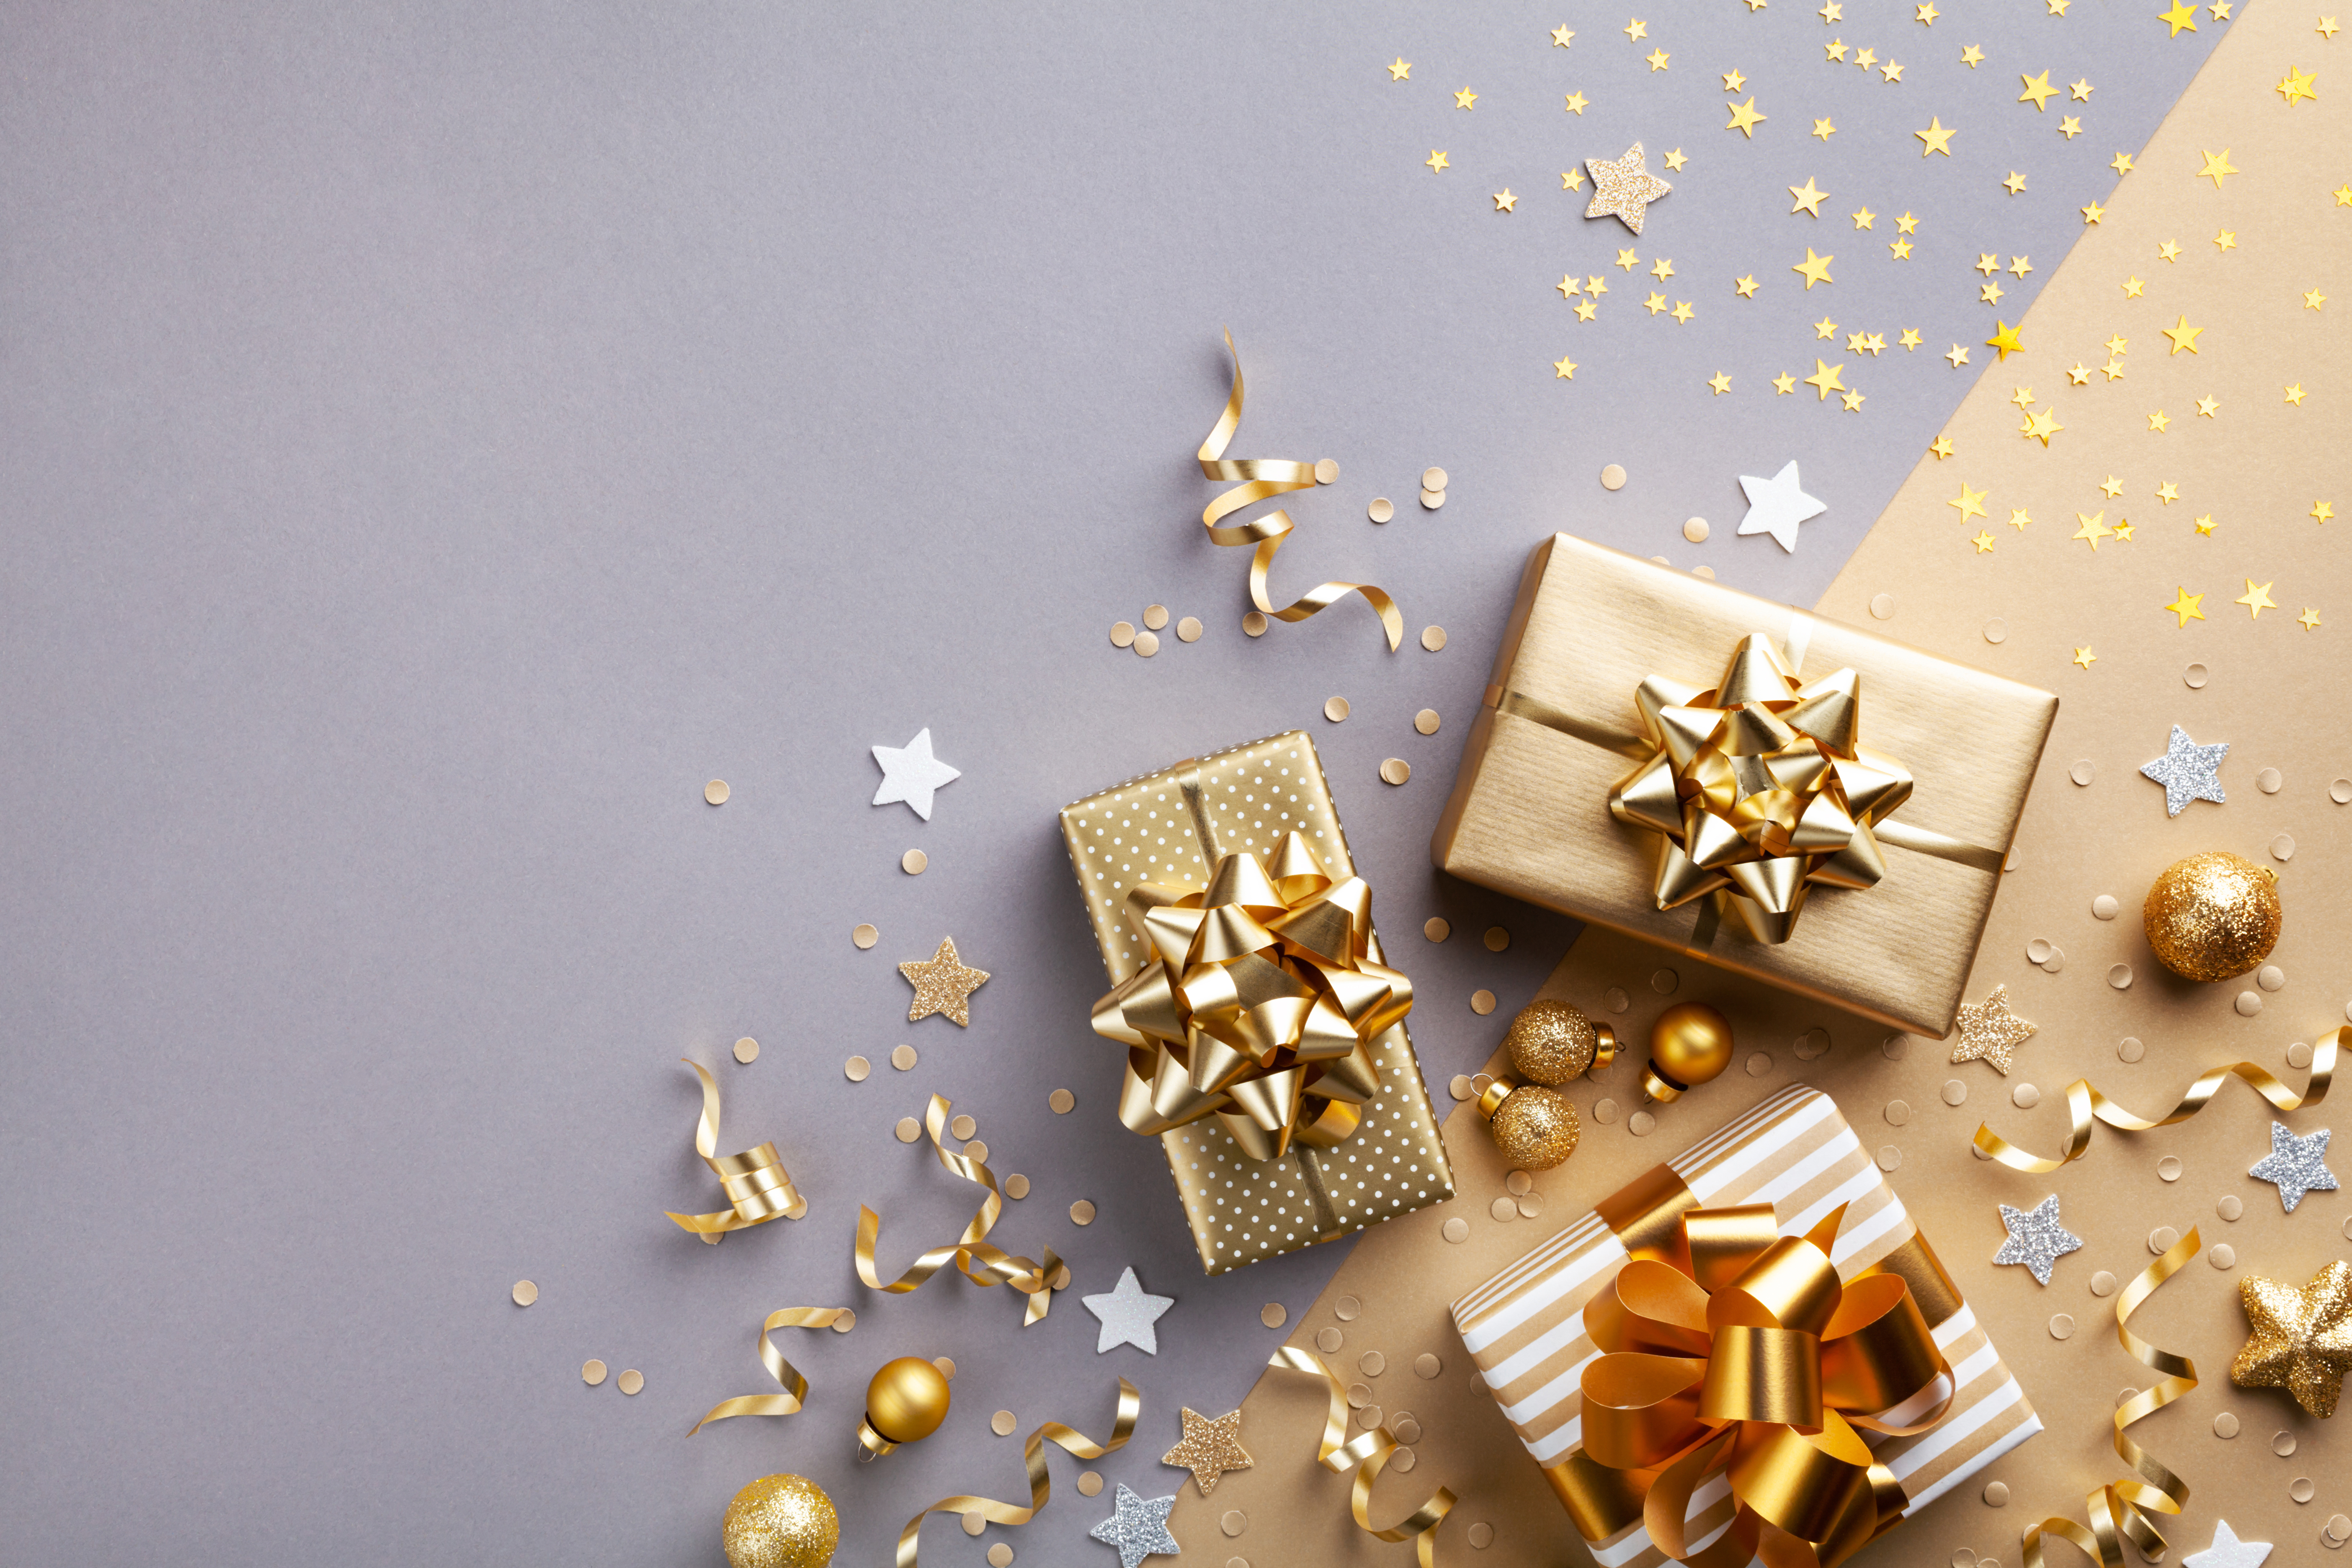 Metallic gift boxes with bows and star confetti shown in a top-down view